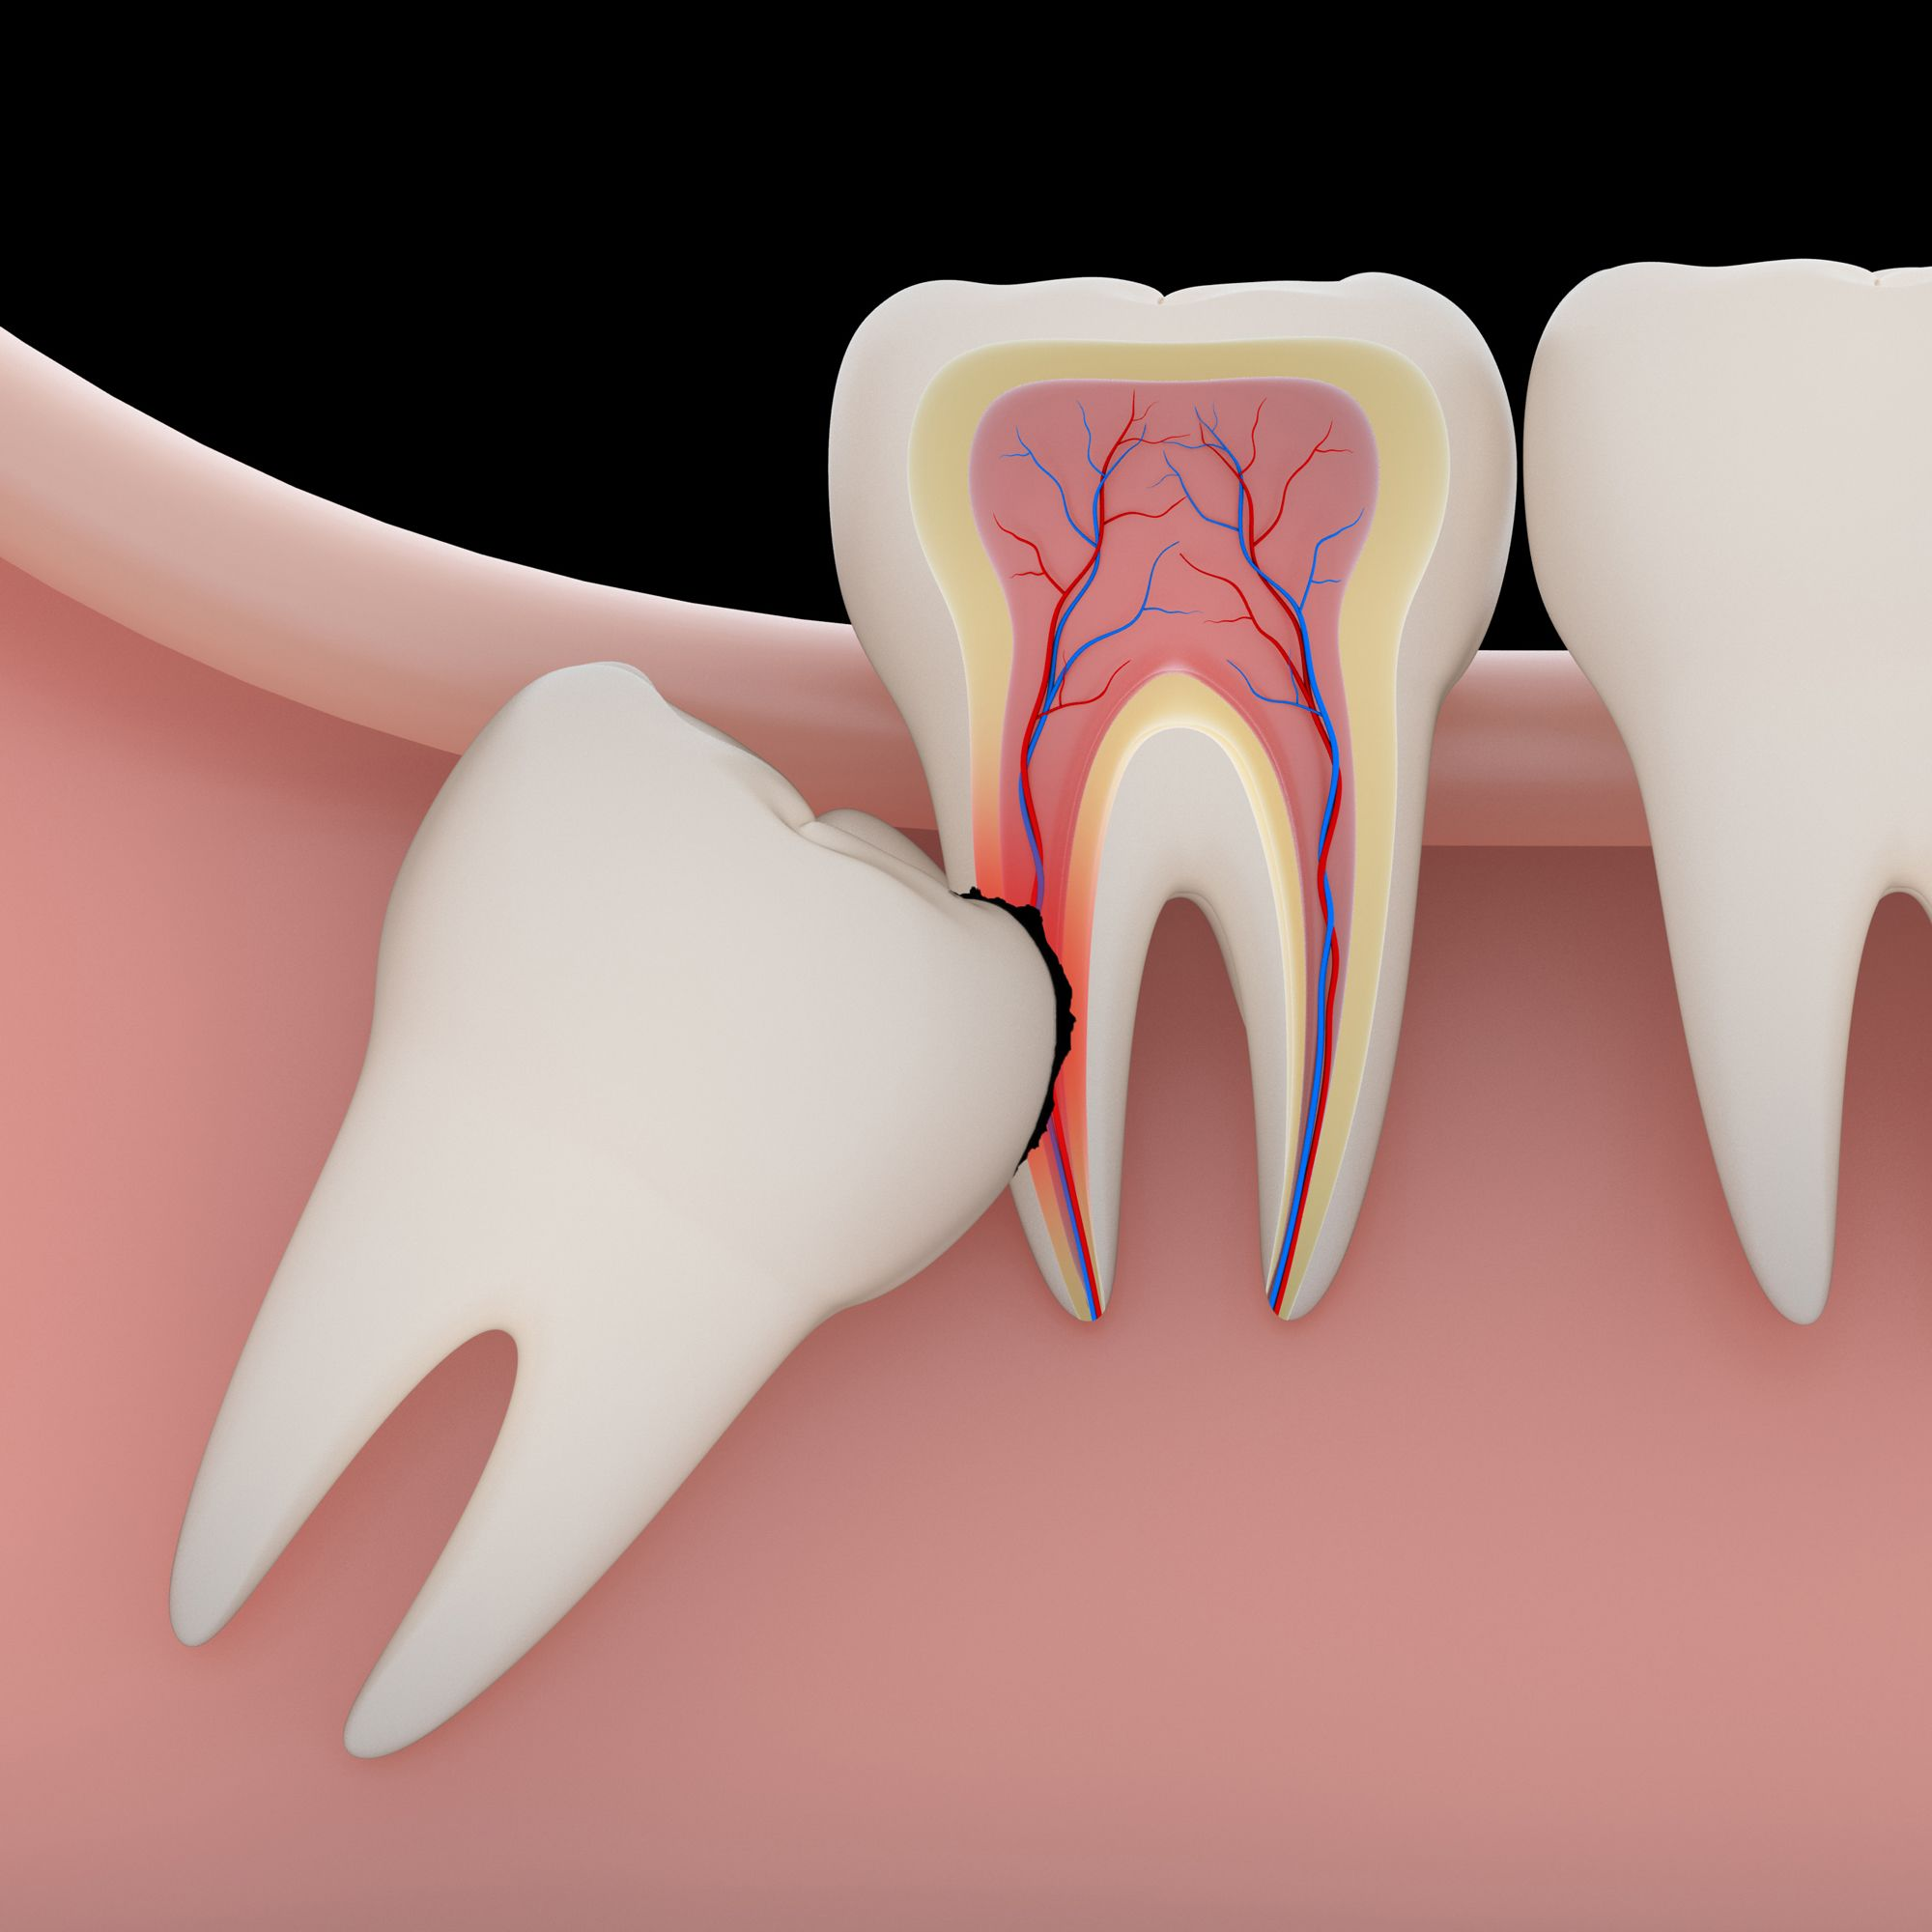 Illustration of a tooth growing into another tooth